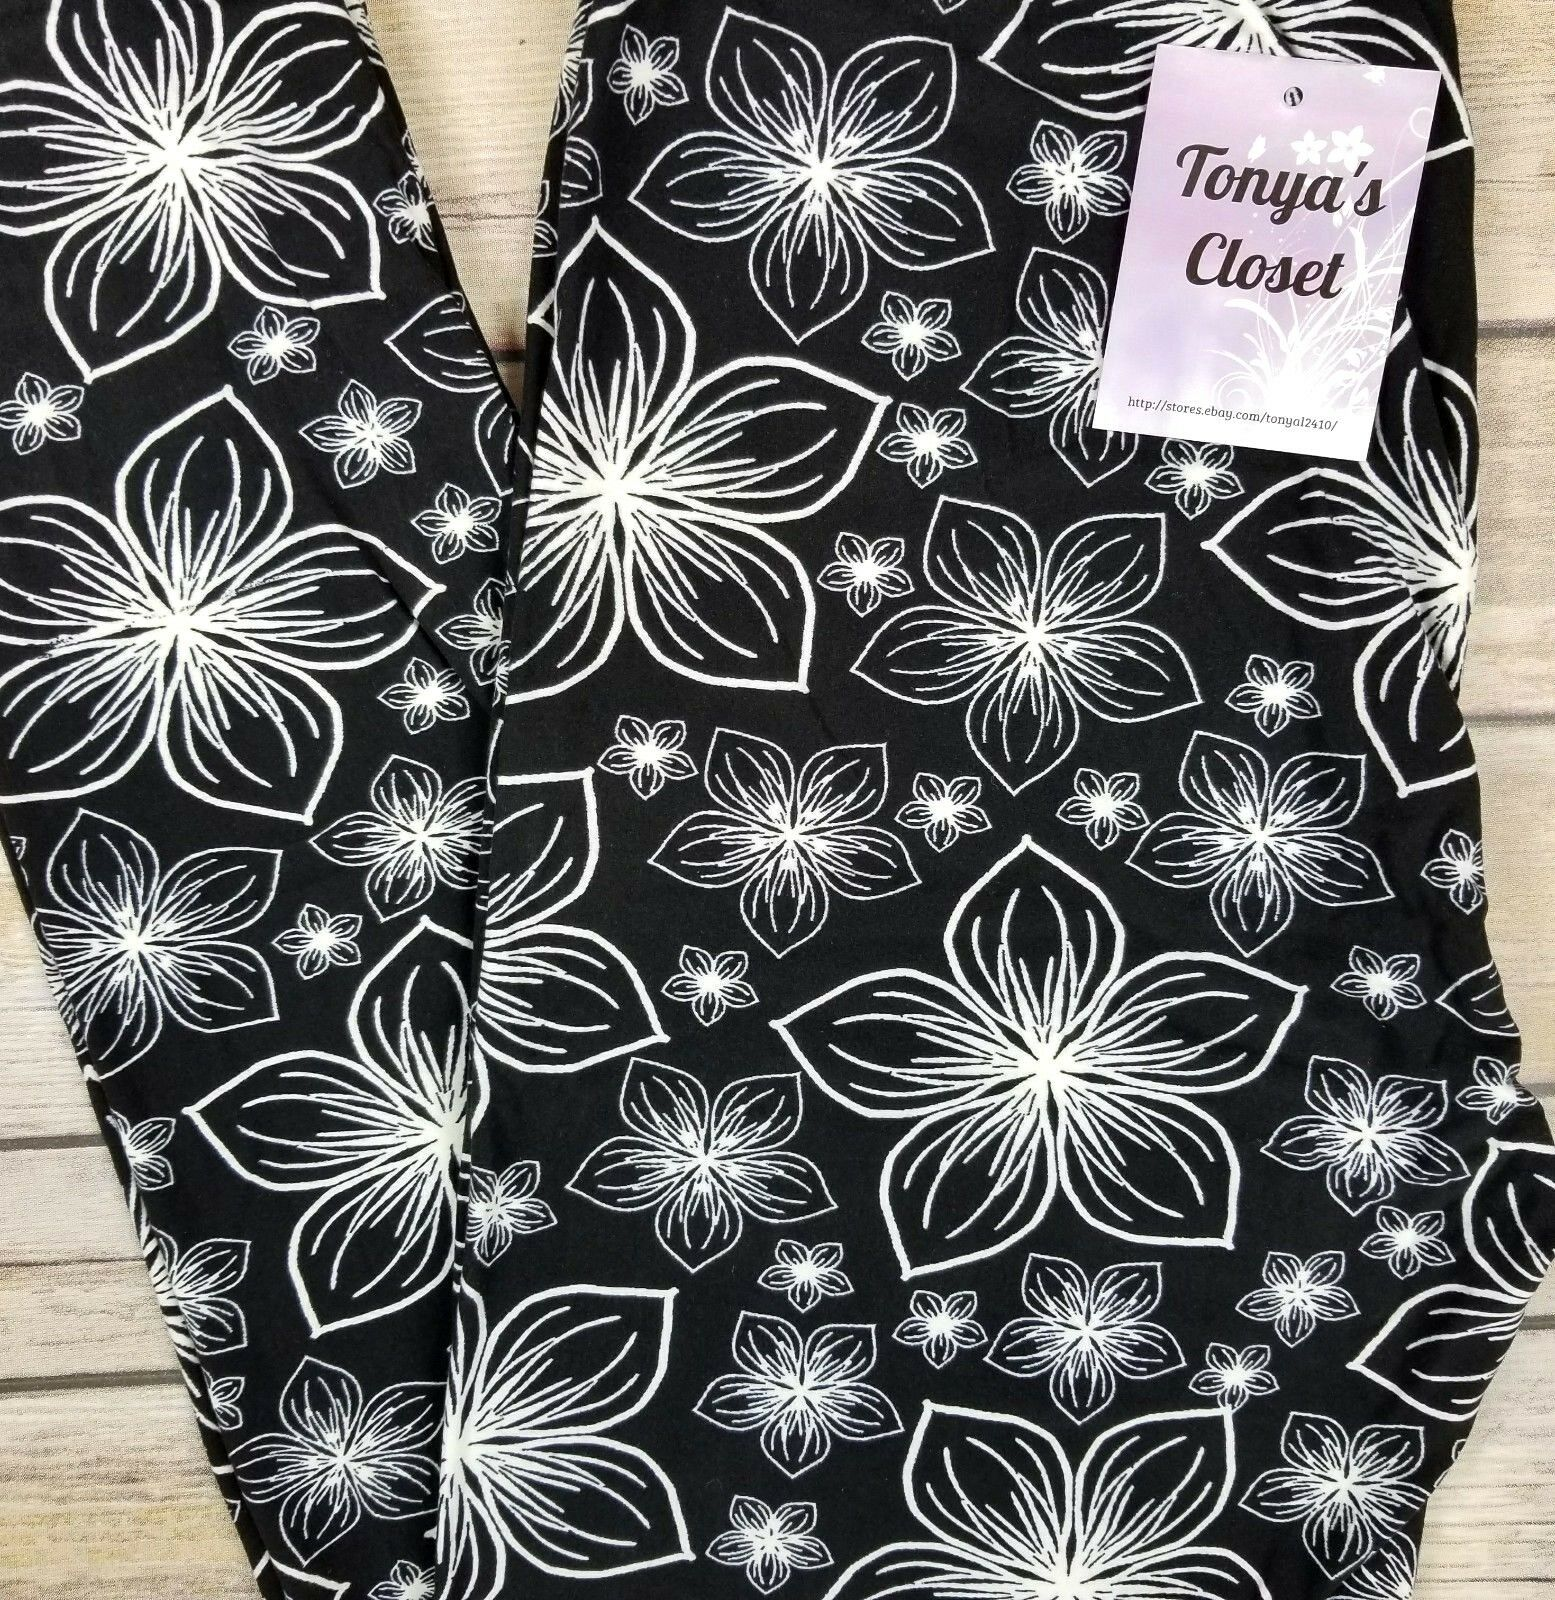 Black White Floral Leggings Lilly Pond Abstract Flowers Butter Soft One Size OS